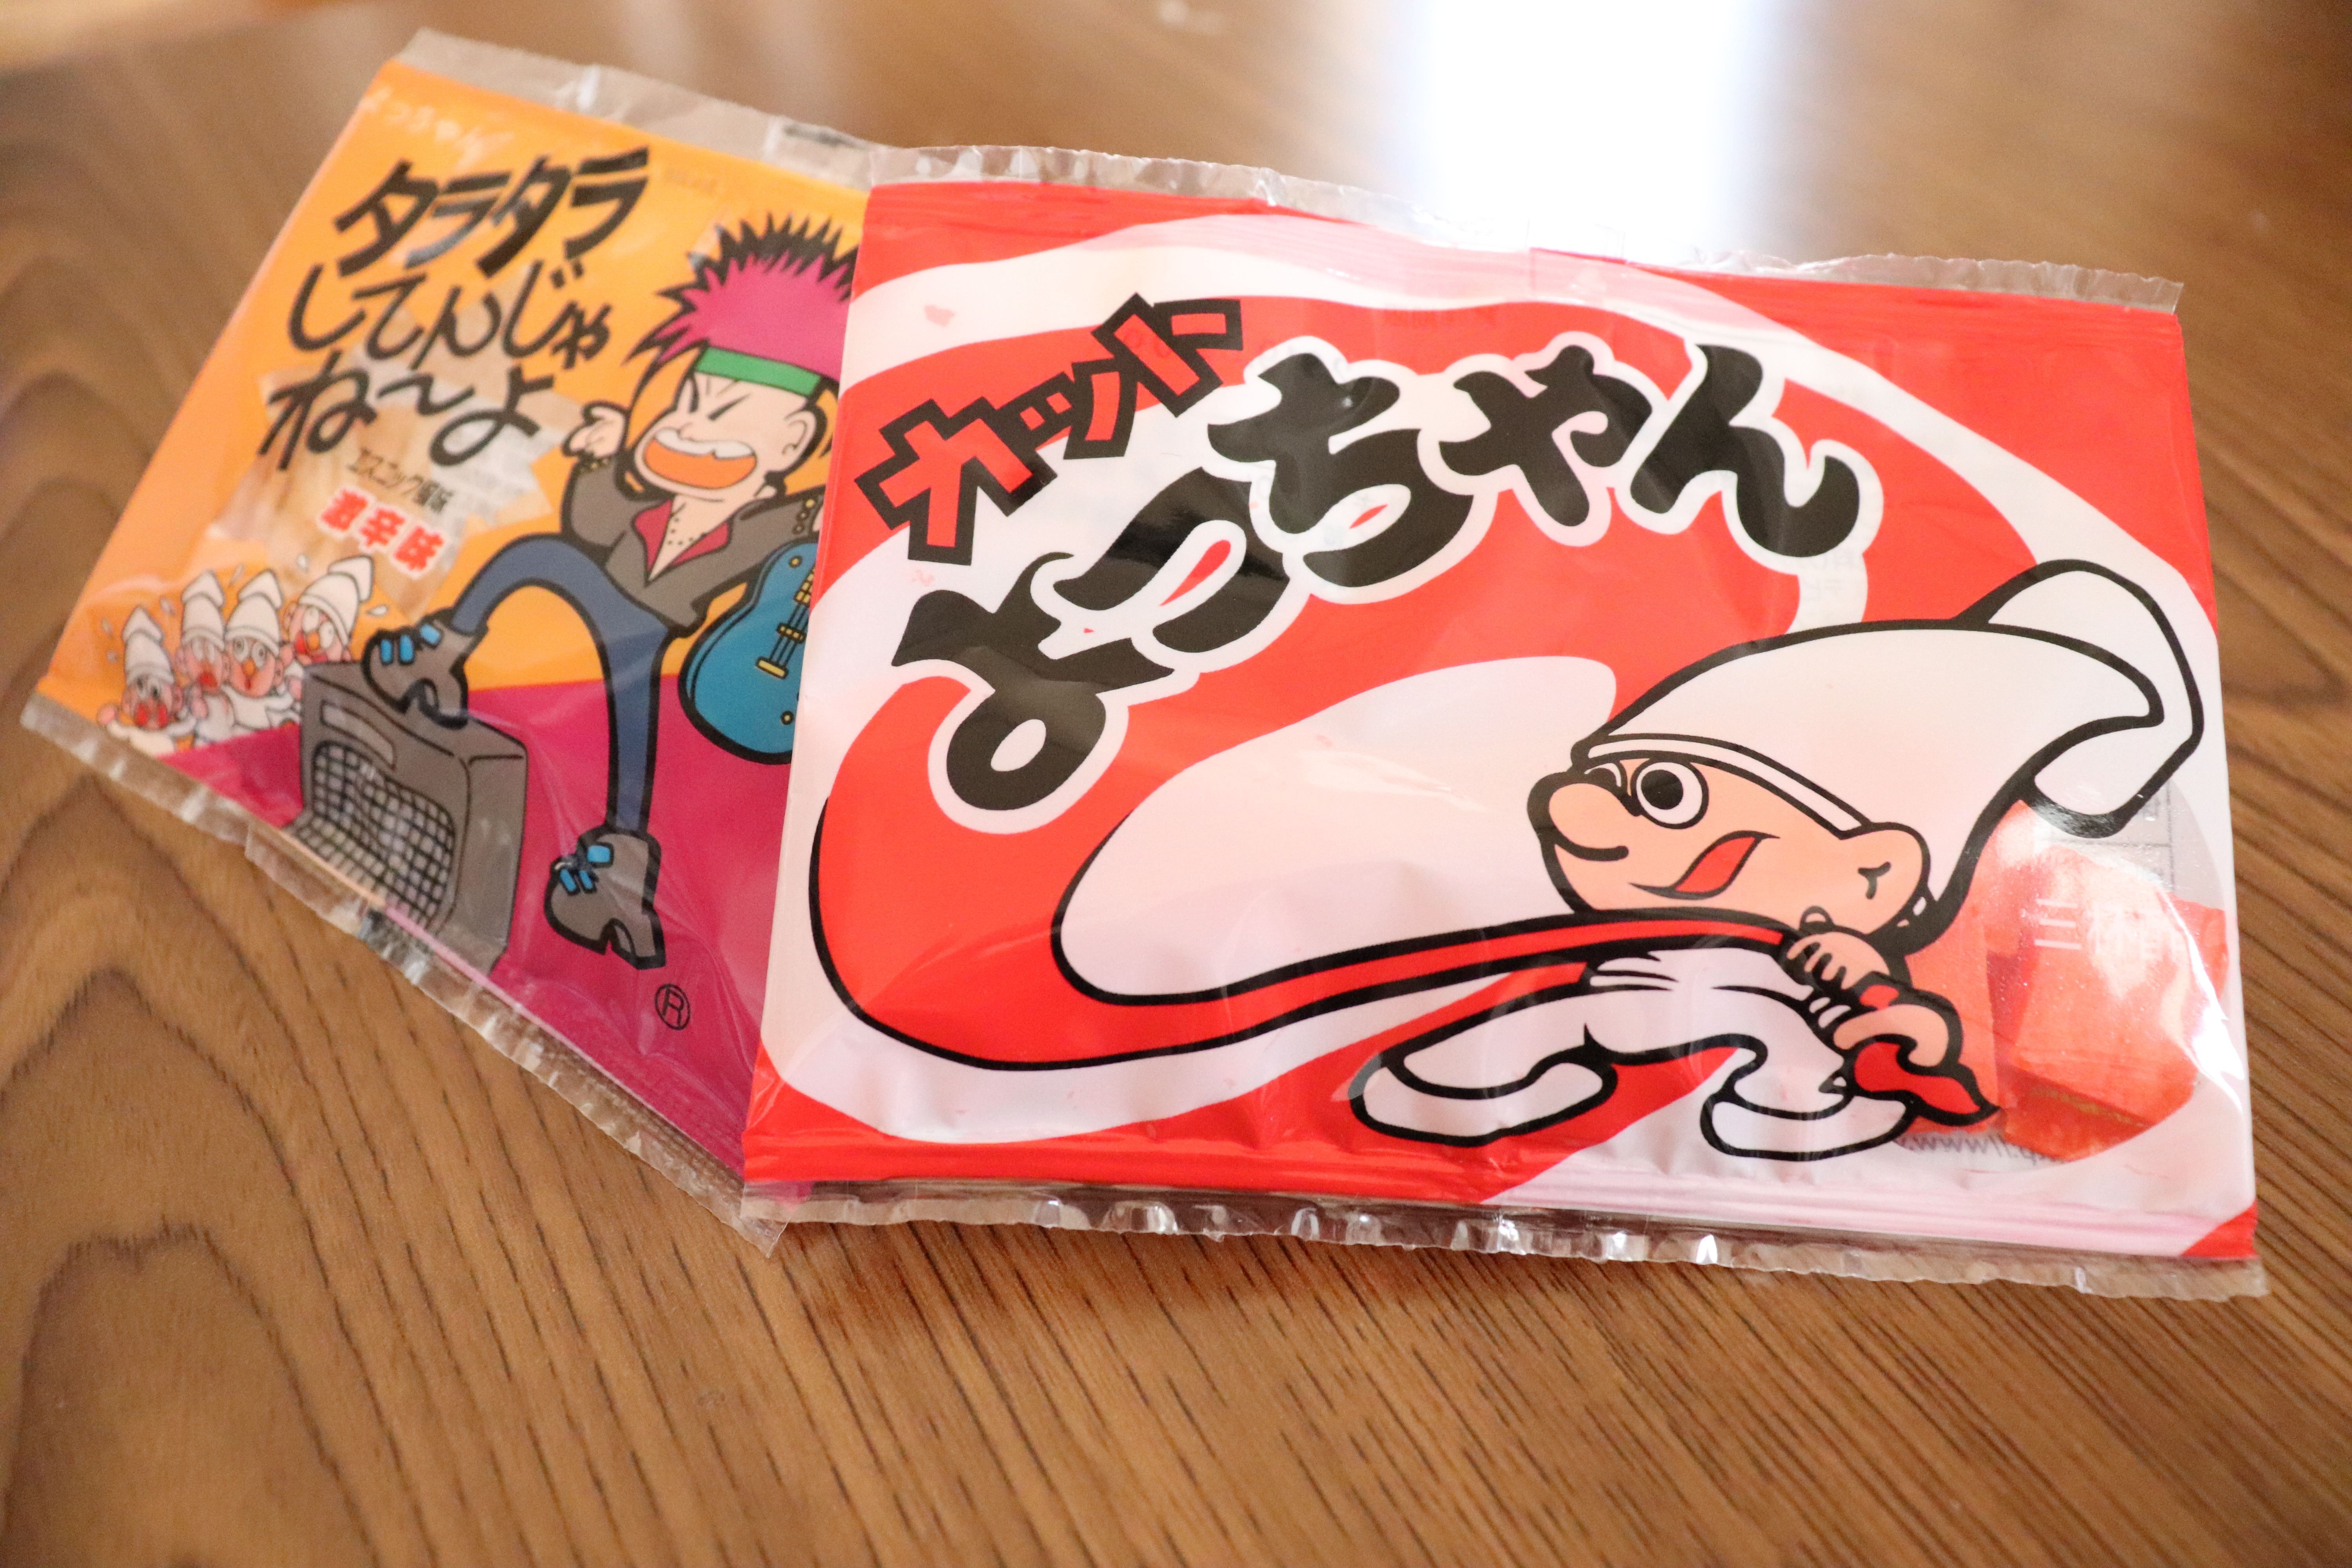 Yocchan ika a kind of Japanese dagashi snack